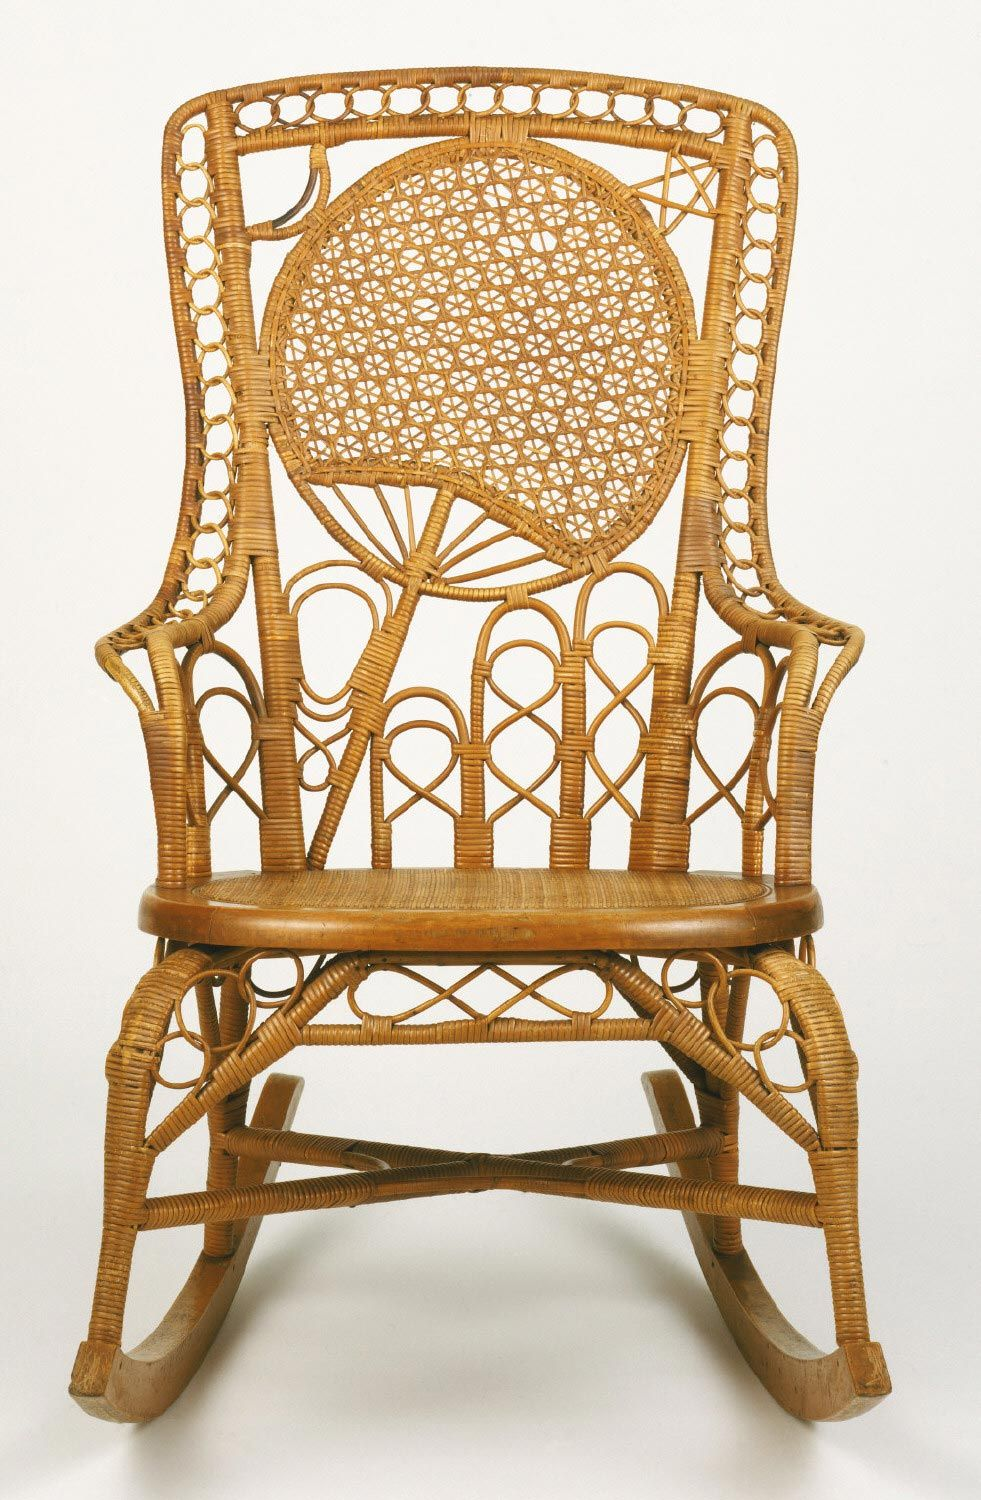 Attrayant Rocking Armchair Made By Heywood Brothers And Company, Gardner,  Massachusetts, 1826   1897 Geography: Made In Gardner, Massachusetts,  United States, ...